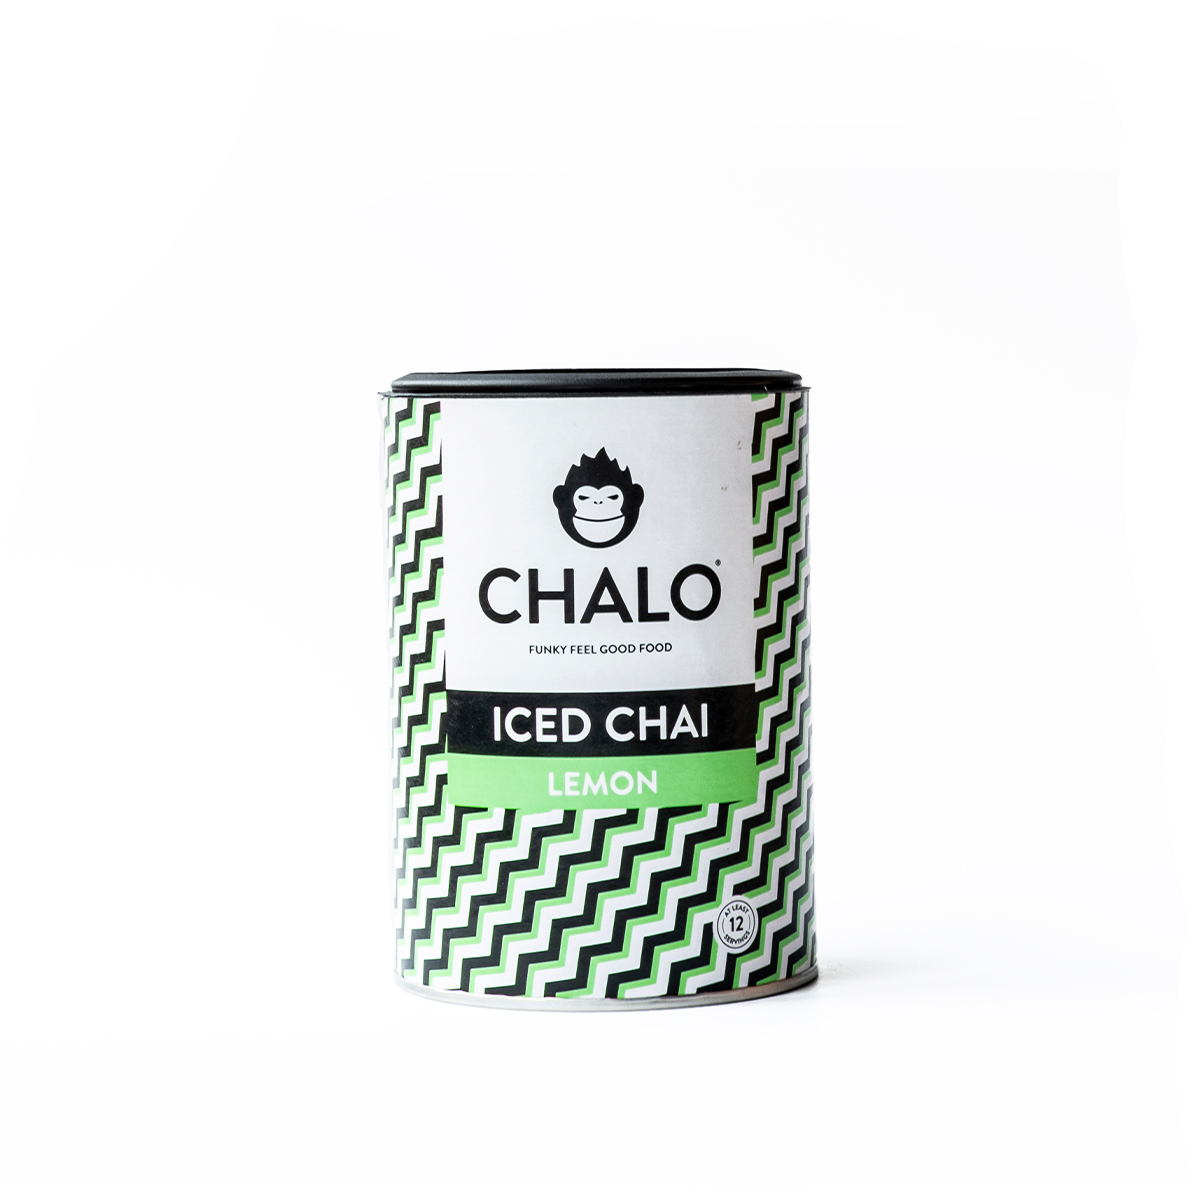 Lemon Iced Chai - iced tea